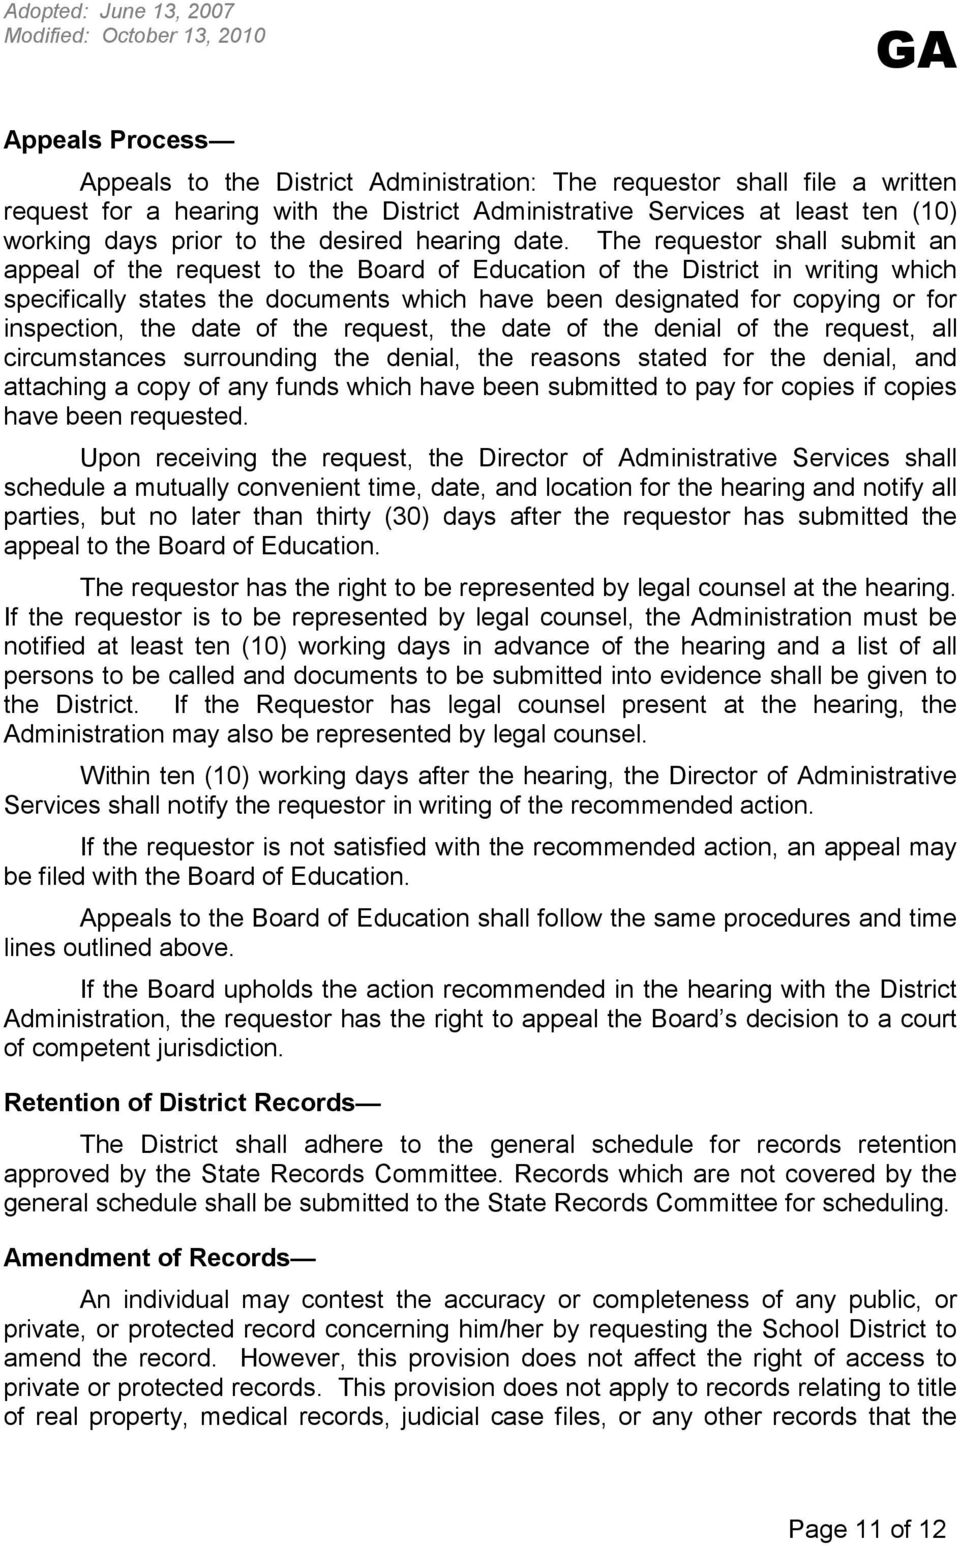 The requestor shall submit an appeal of the request to the Board of Education of the District in writing which specifically states the documents which have been designated for copying or for